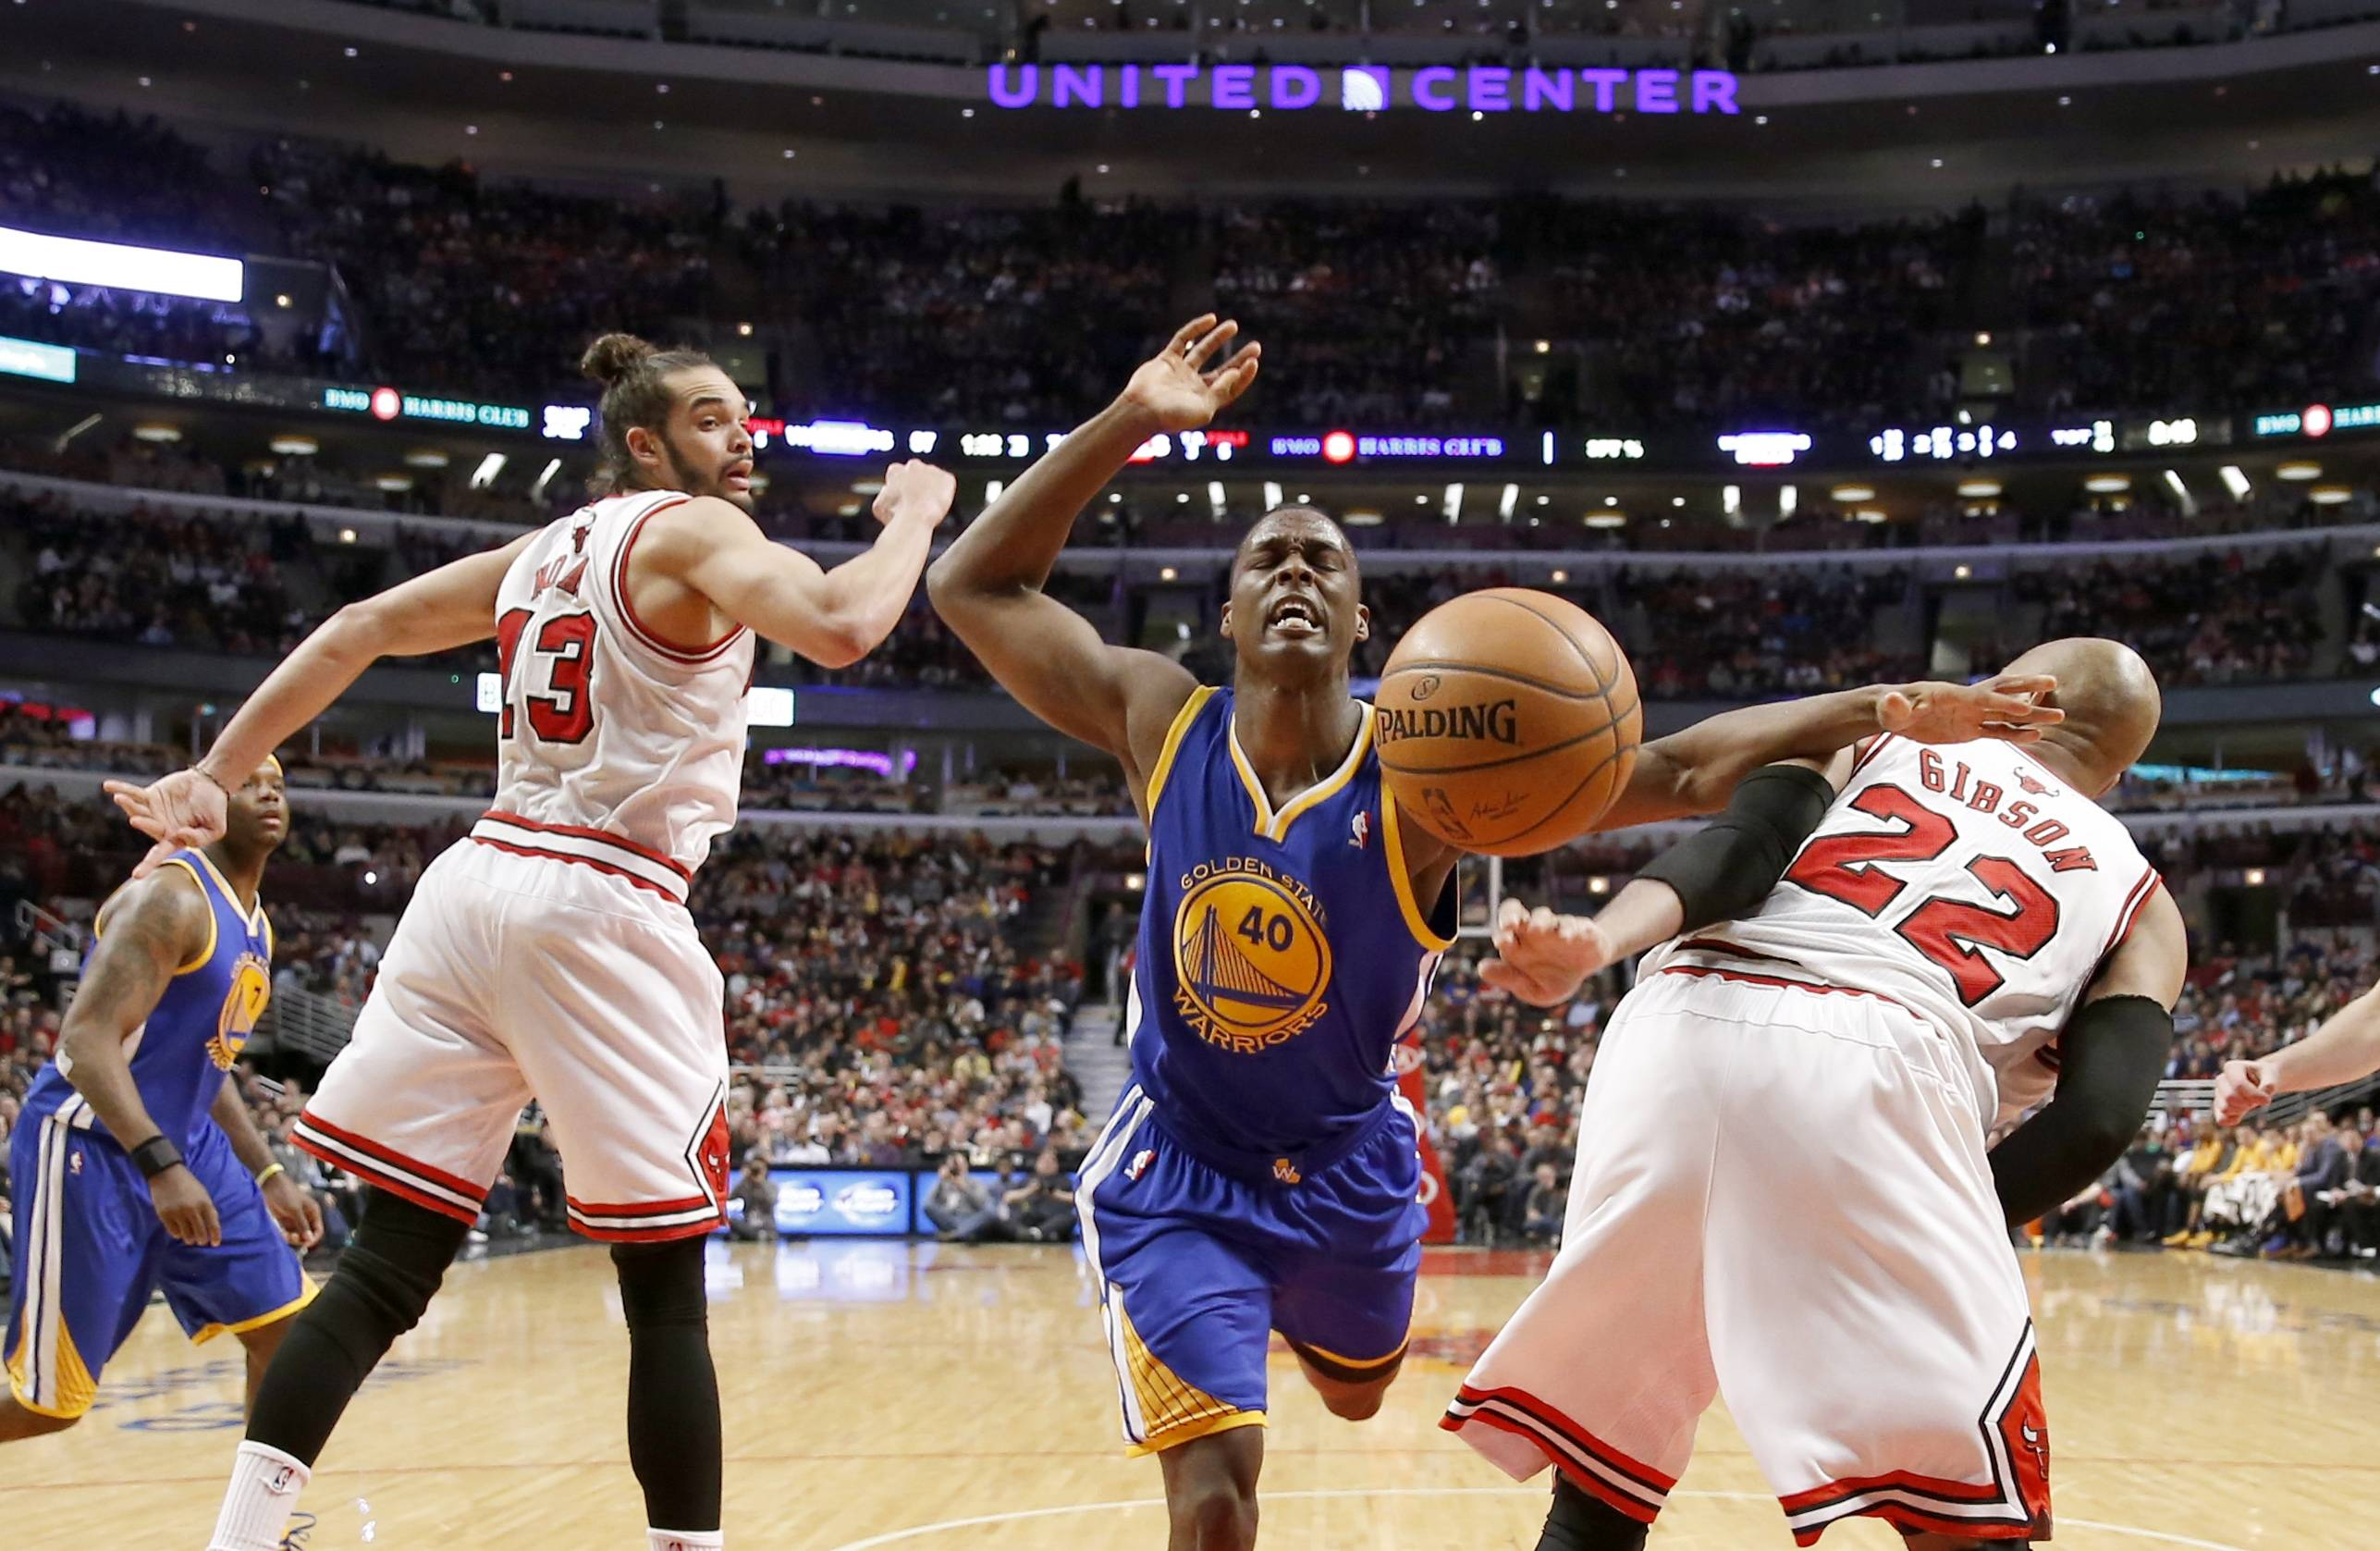 The Warriors' Harrison Barnes has the ball stripped away by the Bulls' Taj Gibson (22) as Joakim Noah (13) defends Wednesday at the United Center.